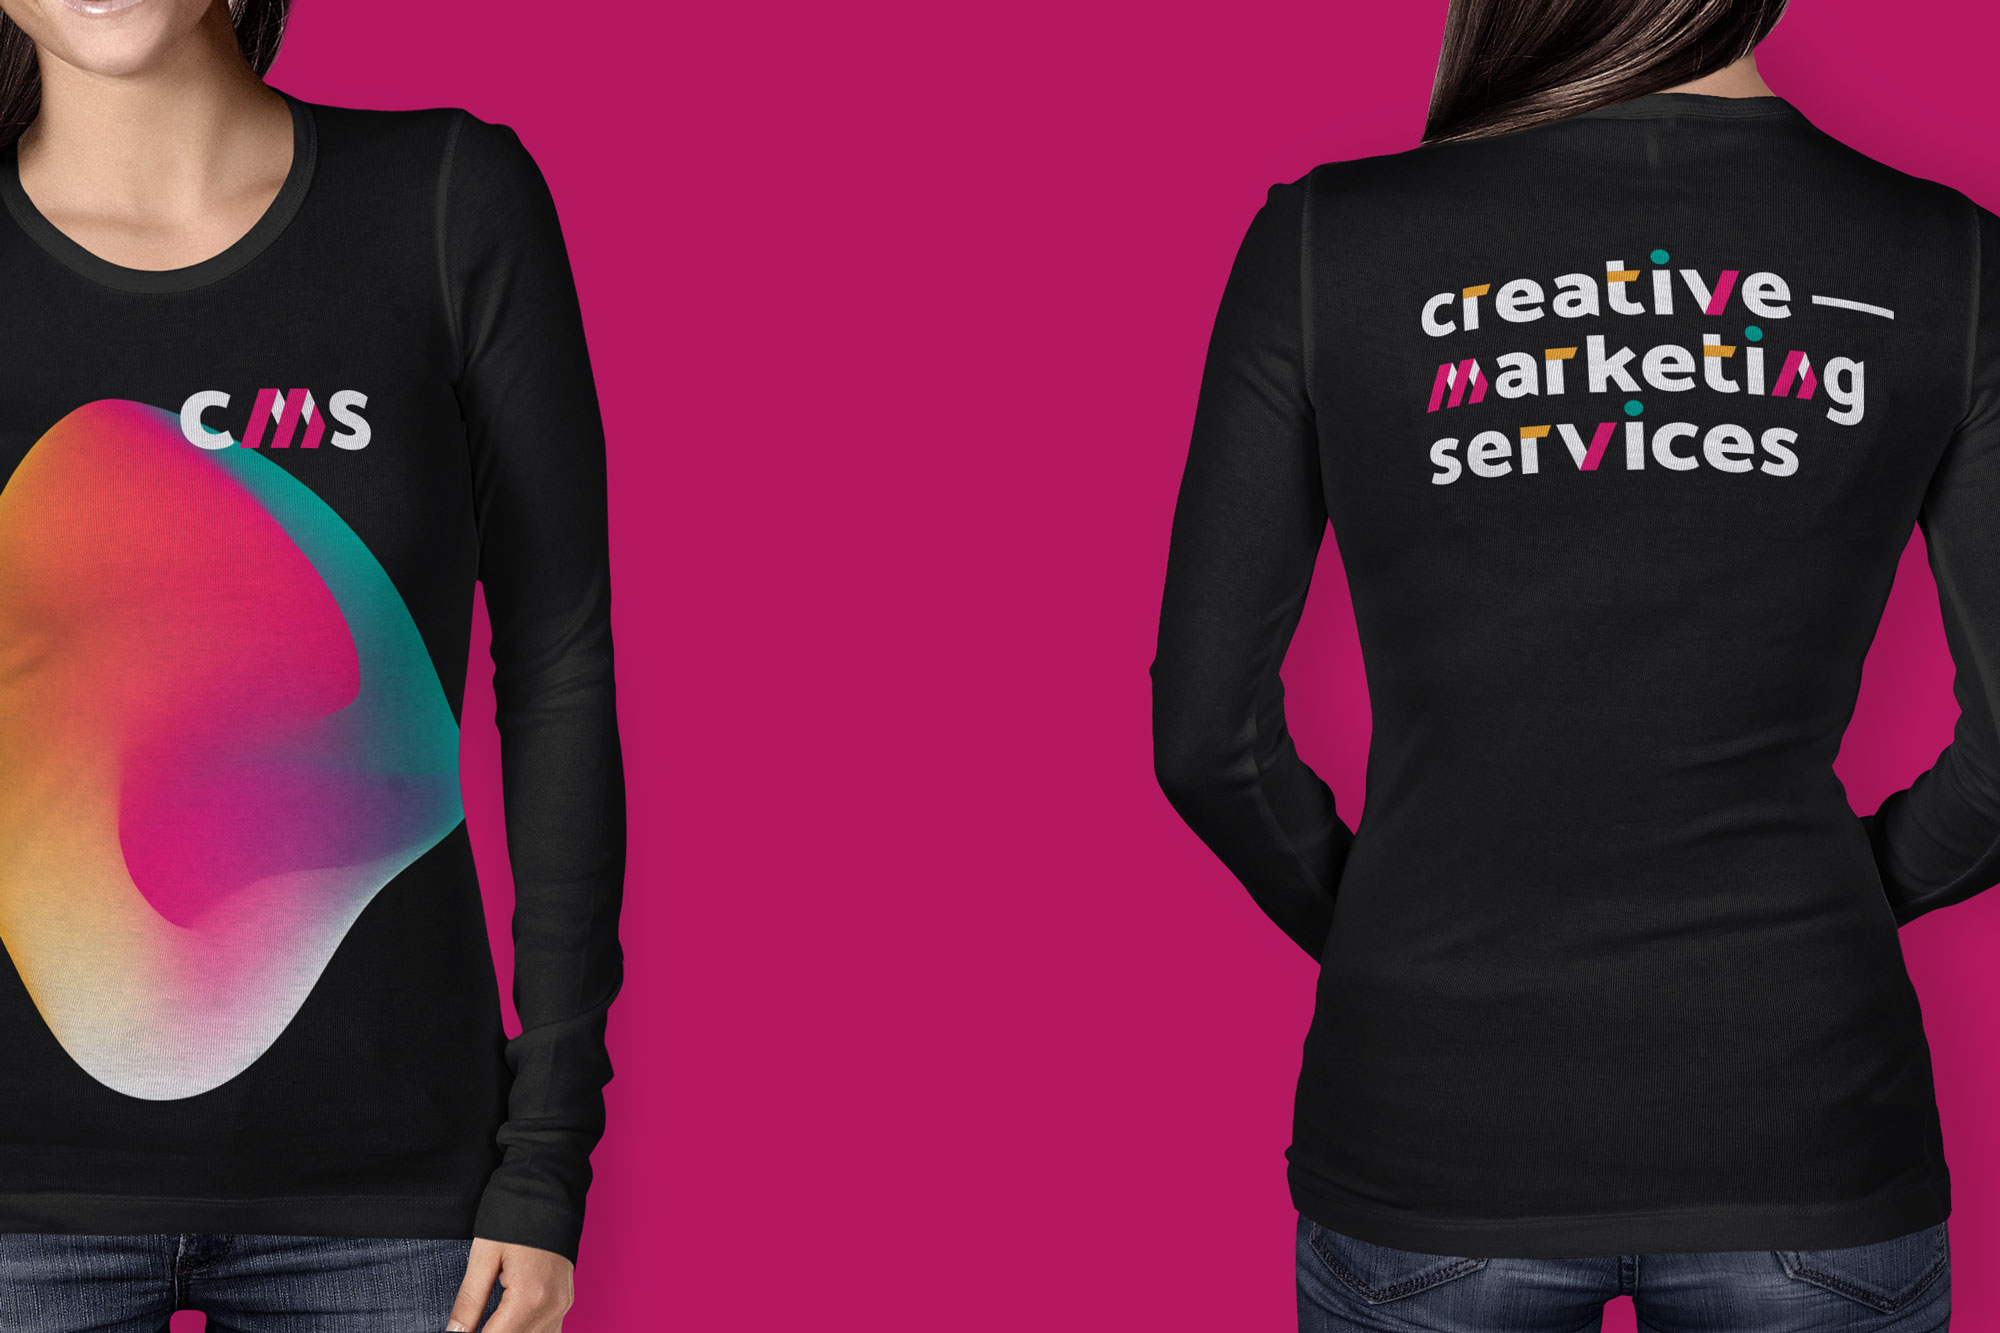 cms-shirt-female-longsleeve-by-yastudio